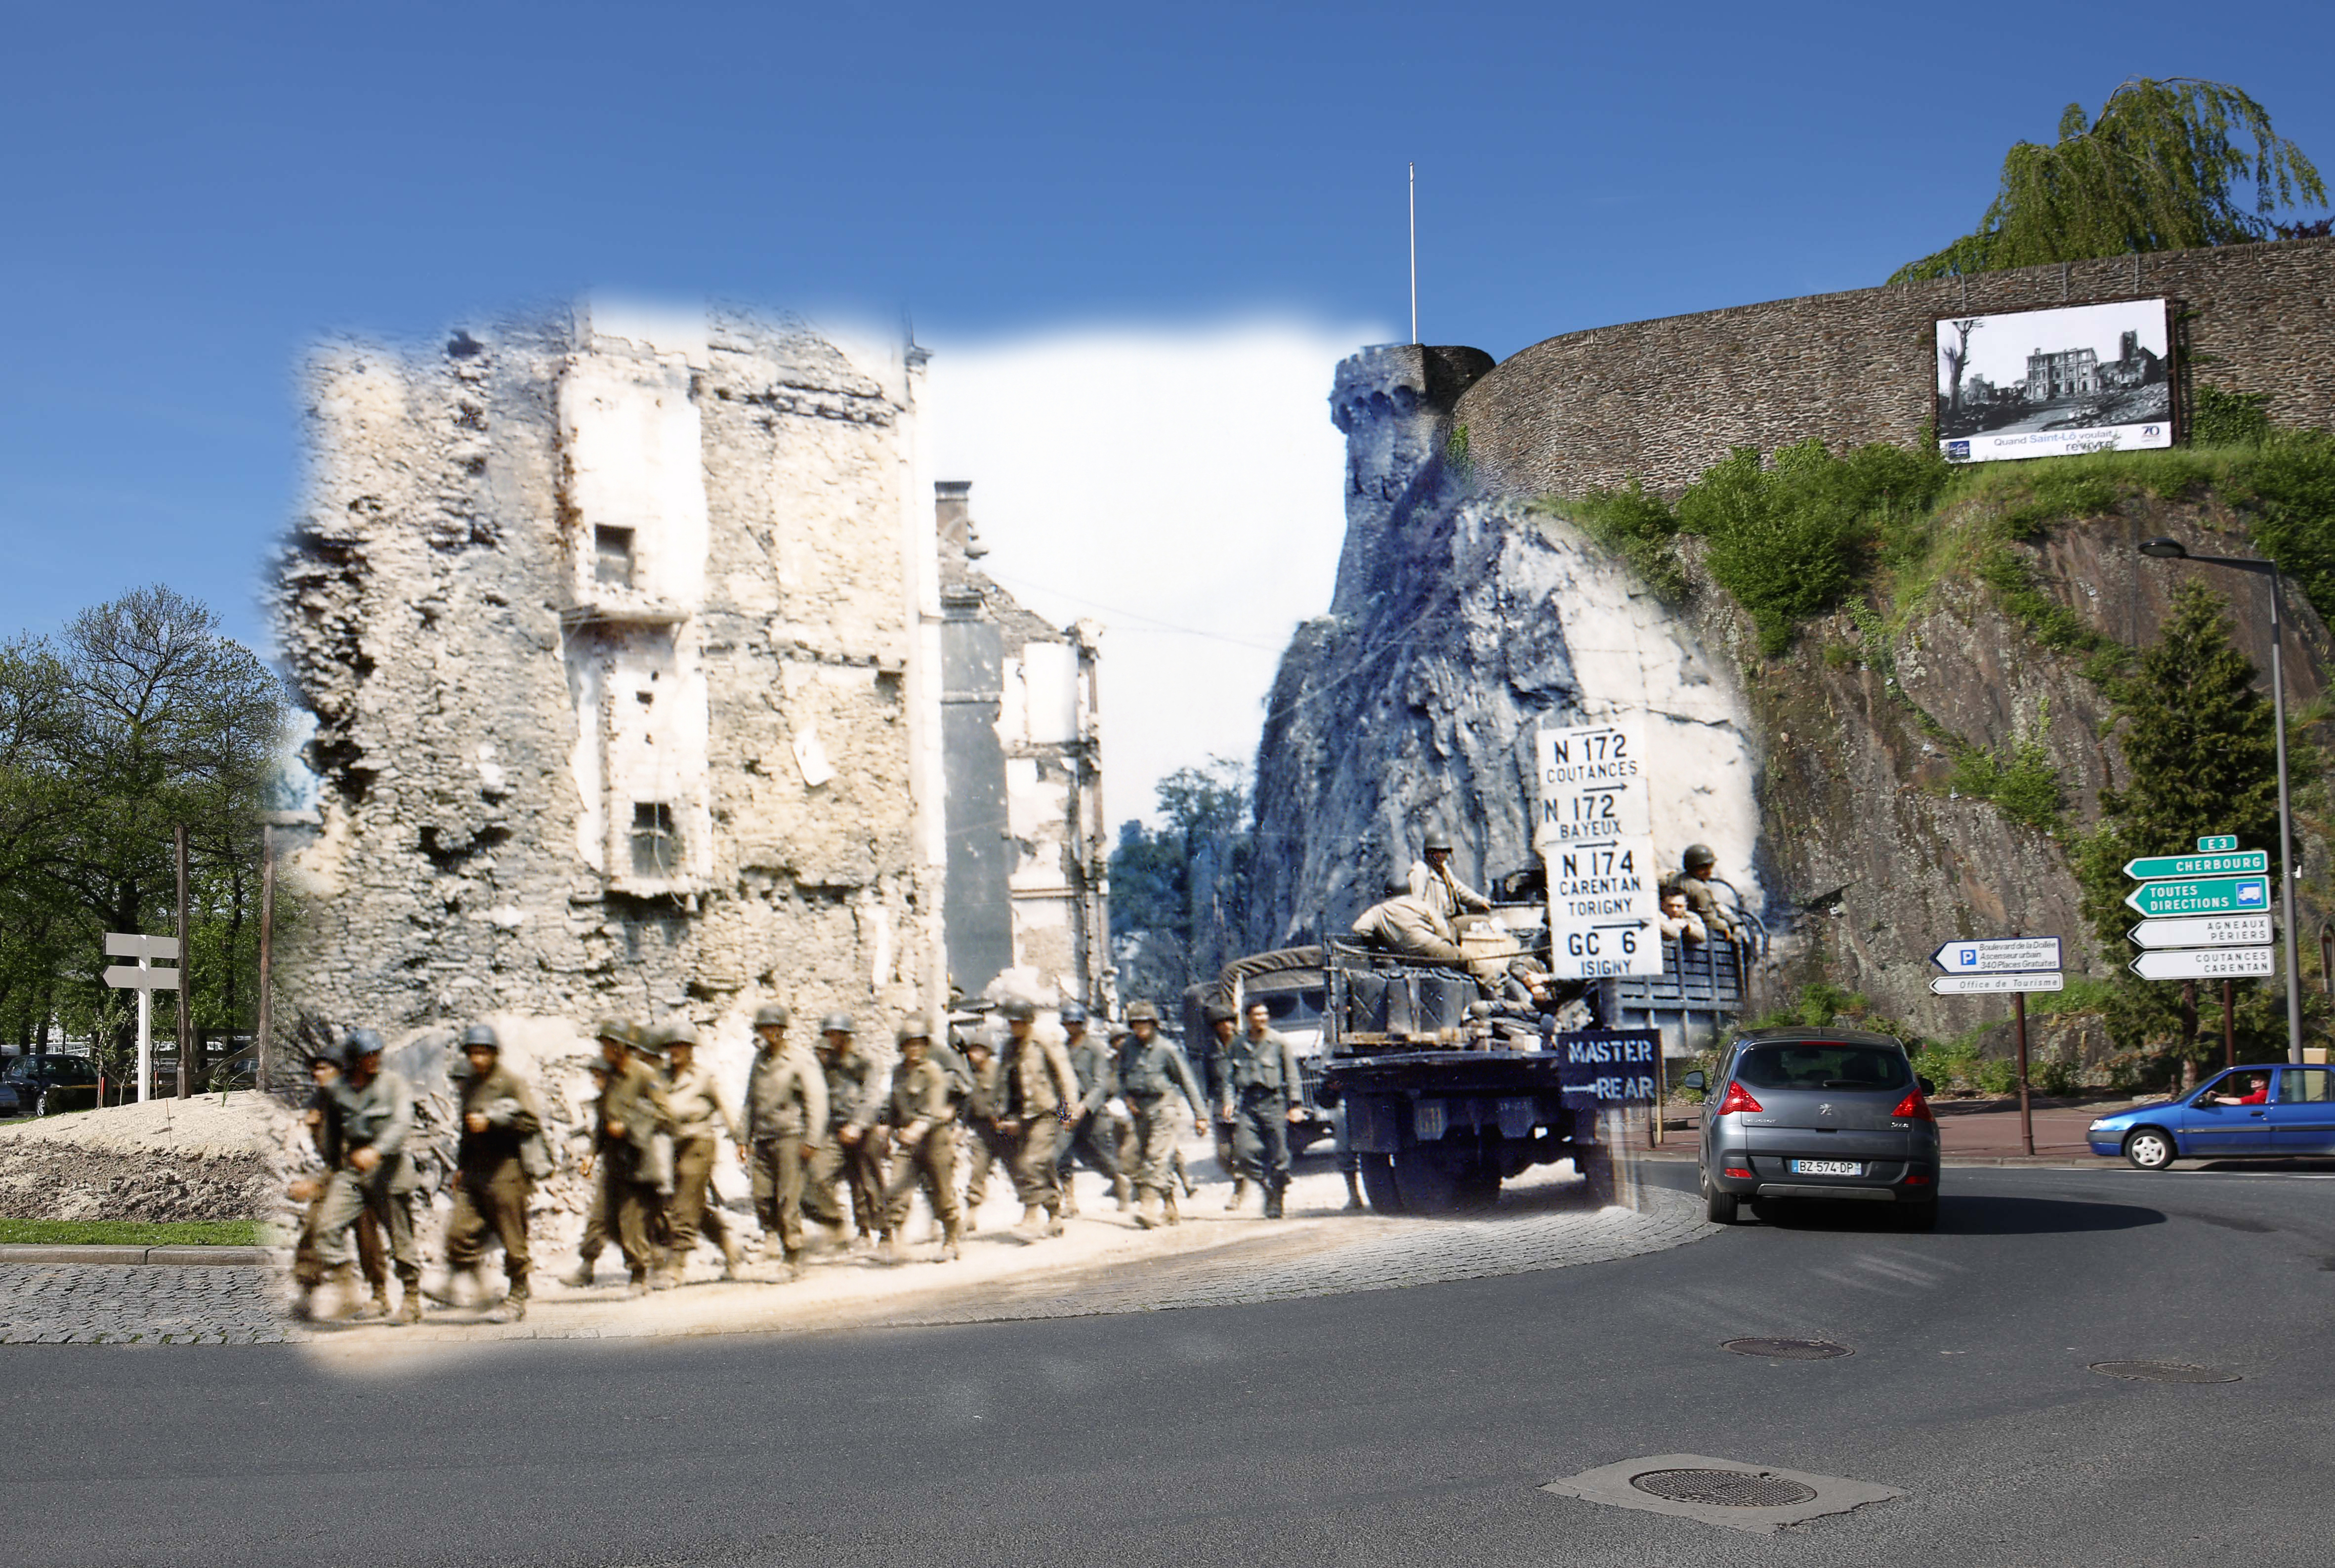 A view of the roadway on May 7, 2014 in Saint Lo, France. Overlay: United States Army trucks and jeeps are driving through the ruins of Saint Lo on July 1944.